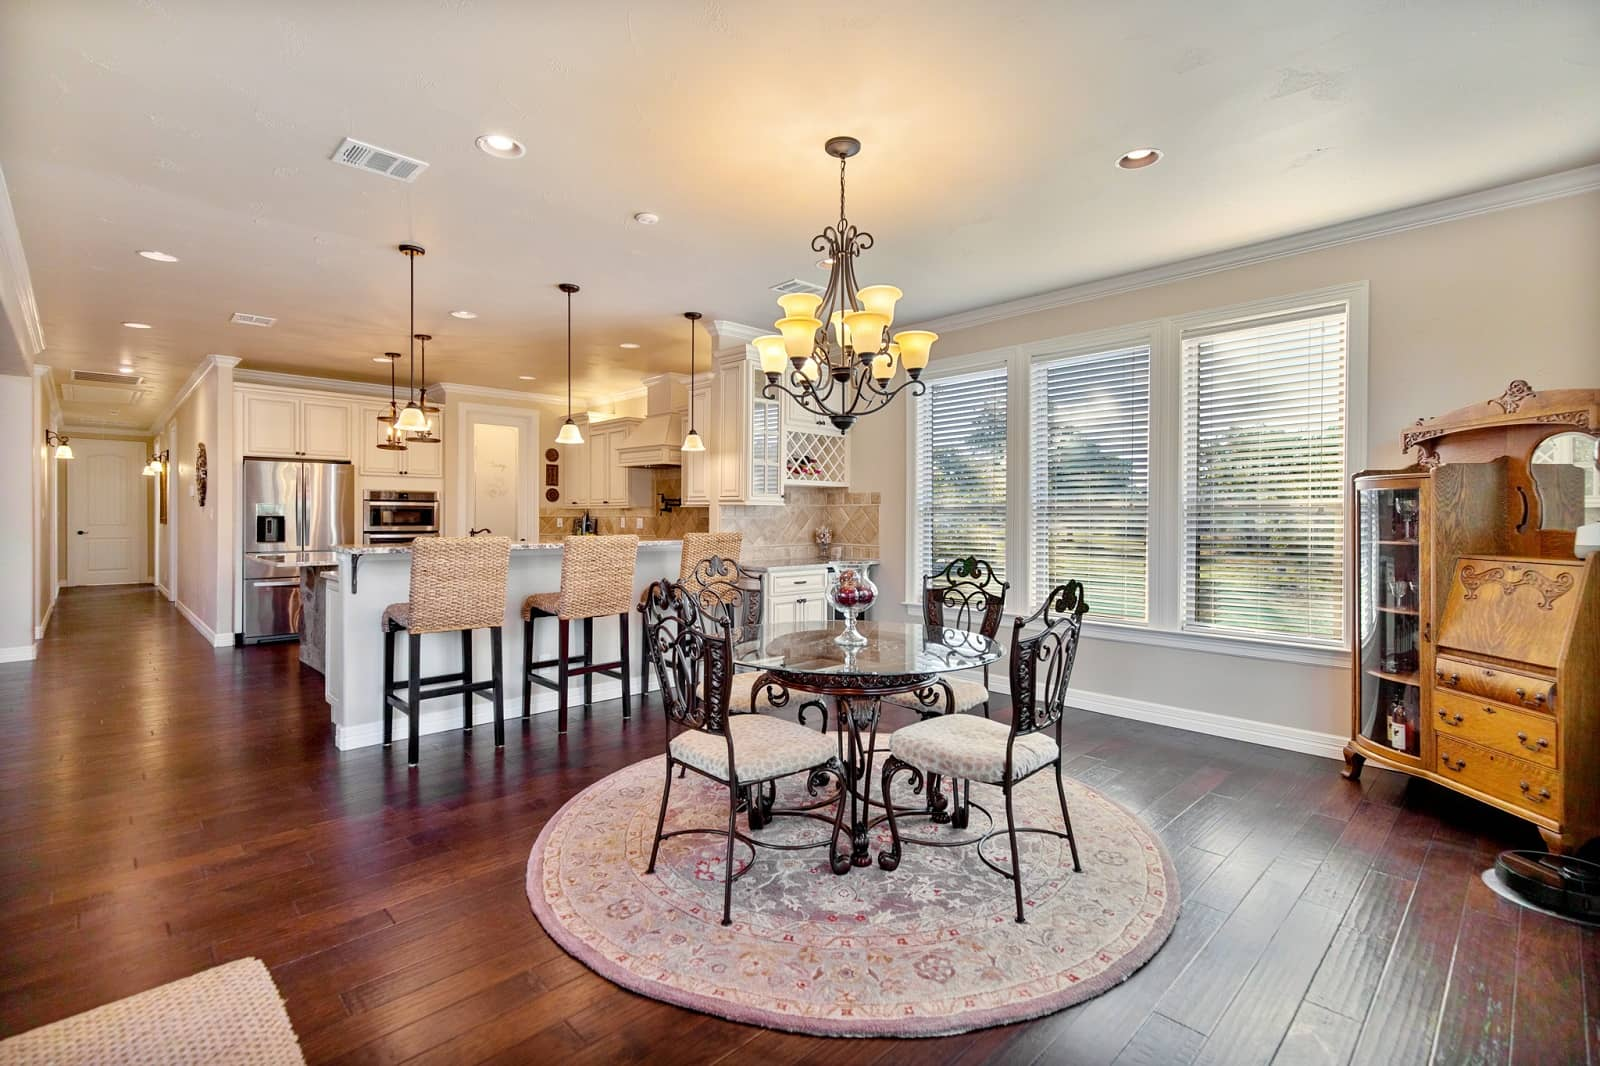 Real Estate Photography in New Braunfels - TX - Kitchen View